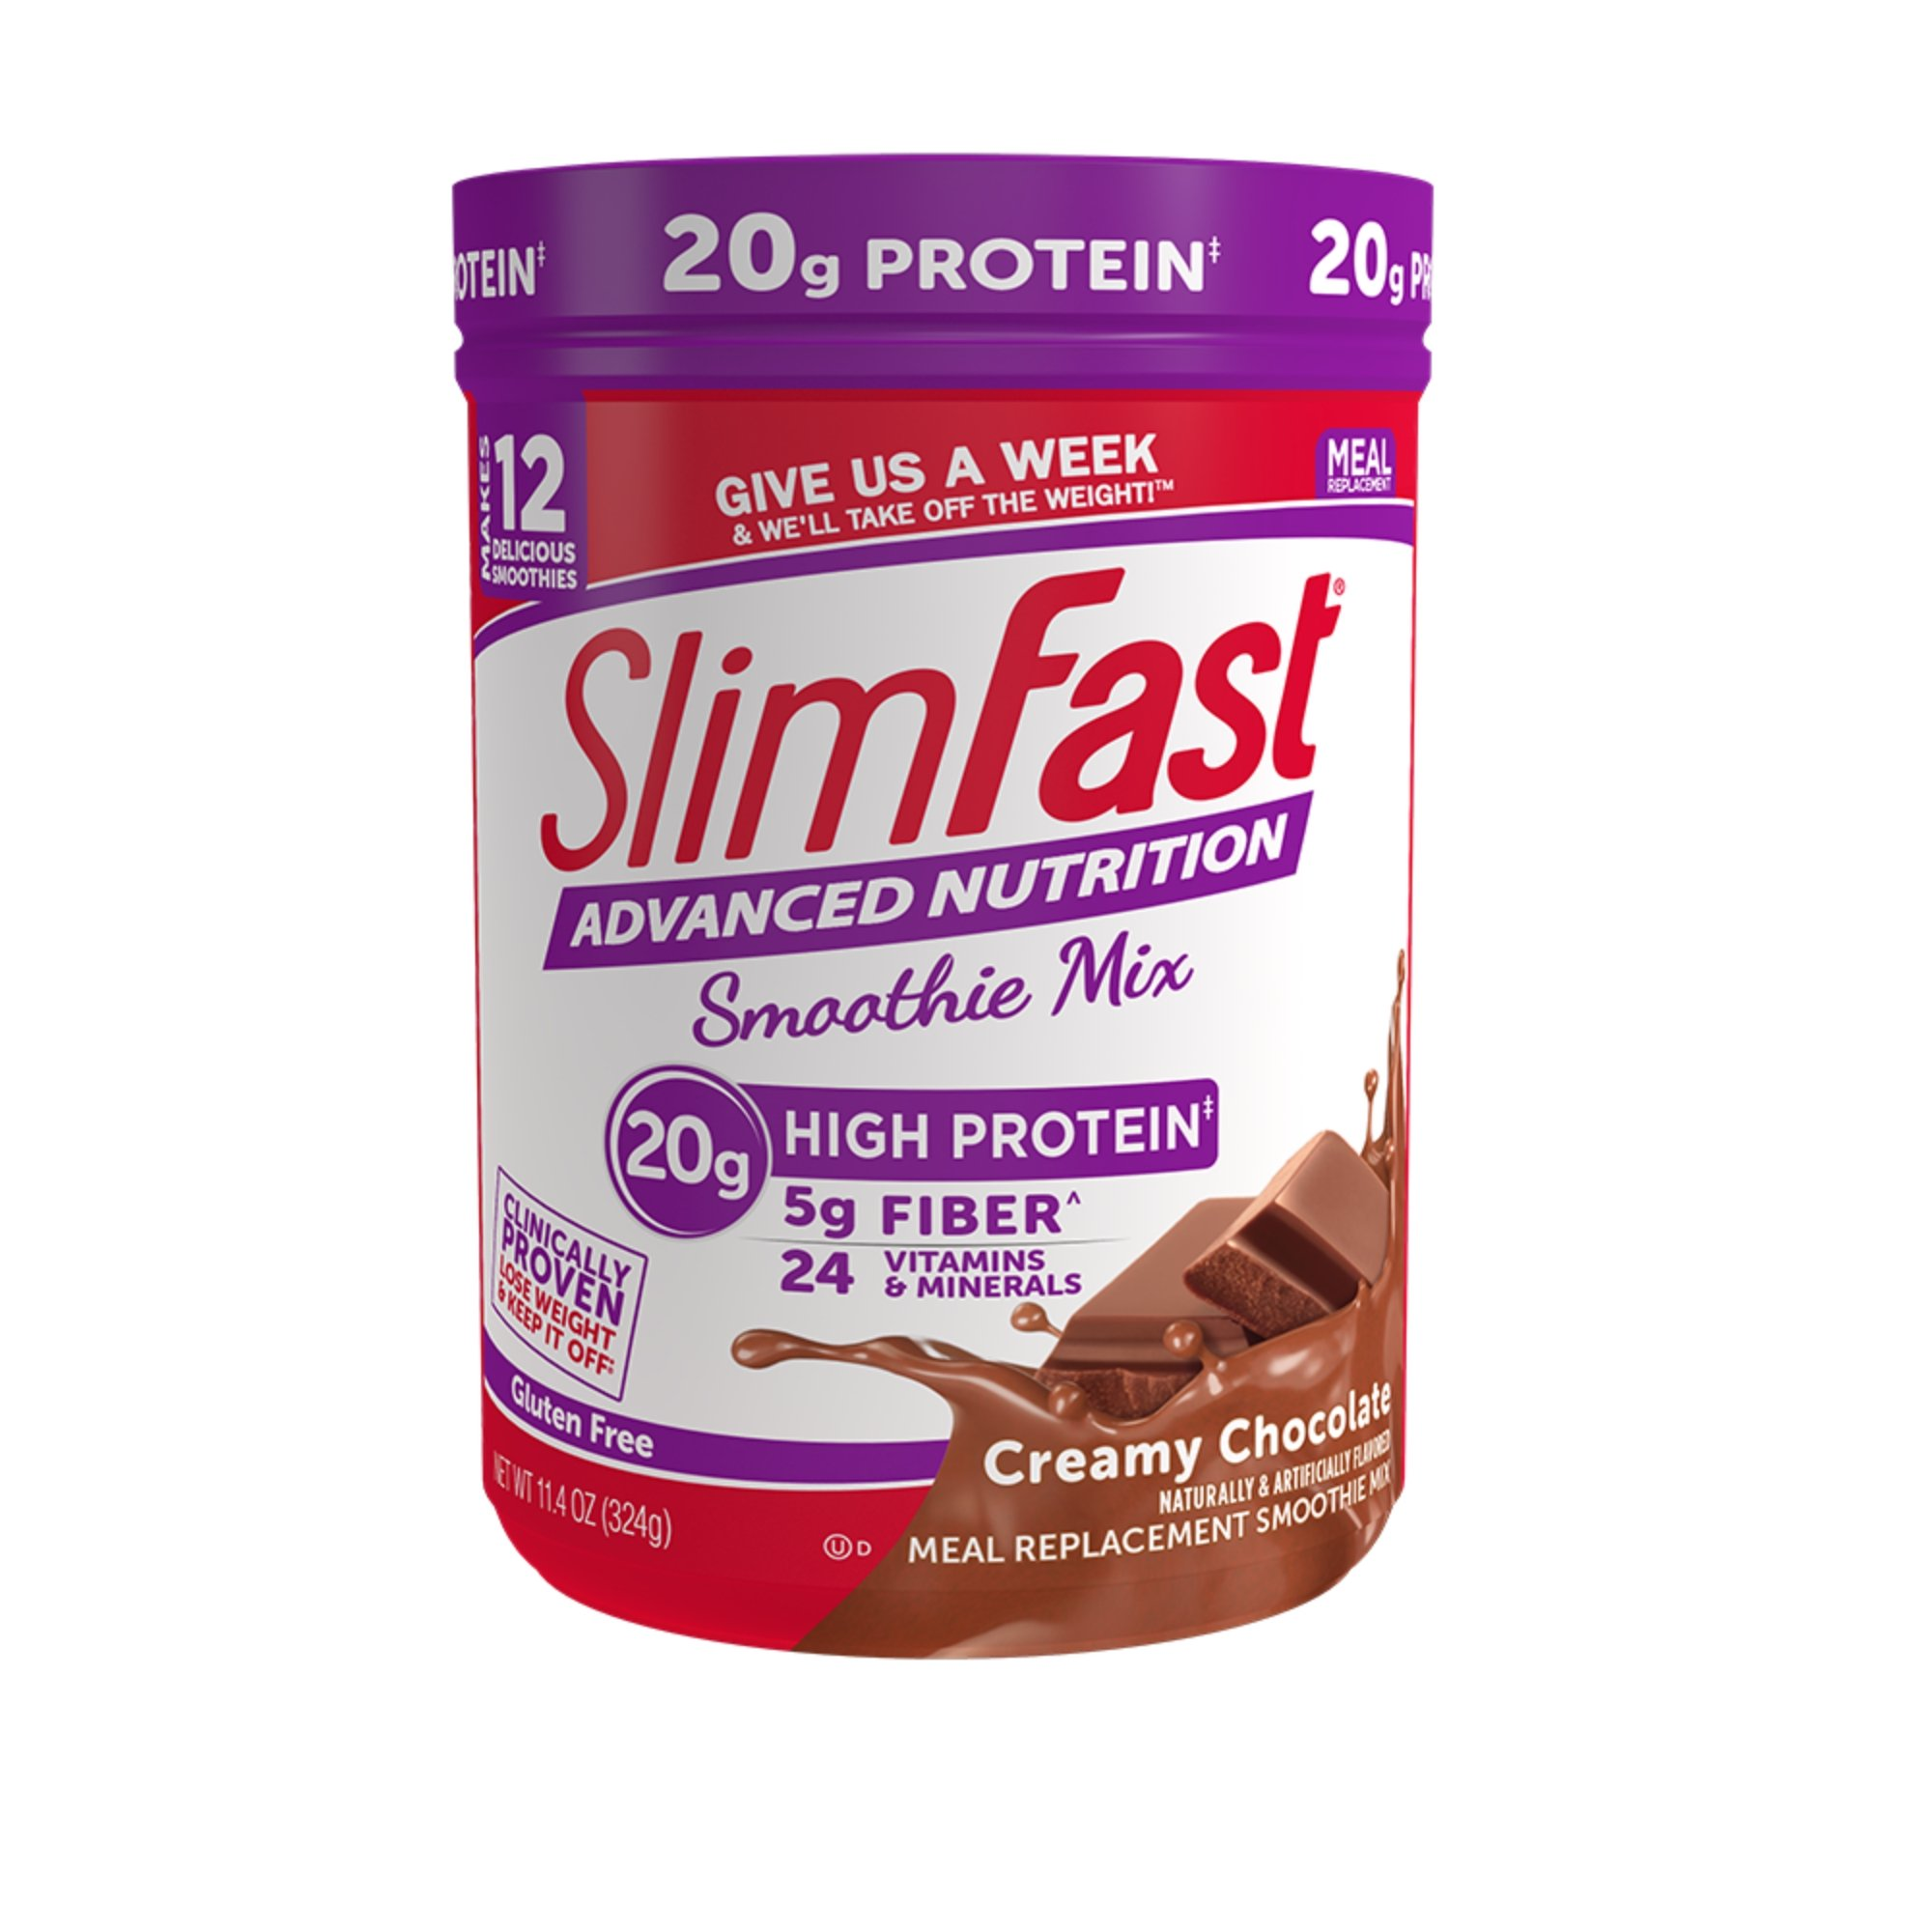 SlimFast Advanced Nutrition Smoothie, Meal Replacement